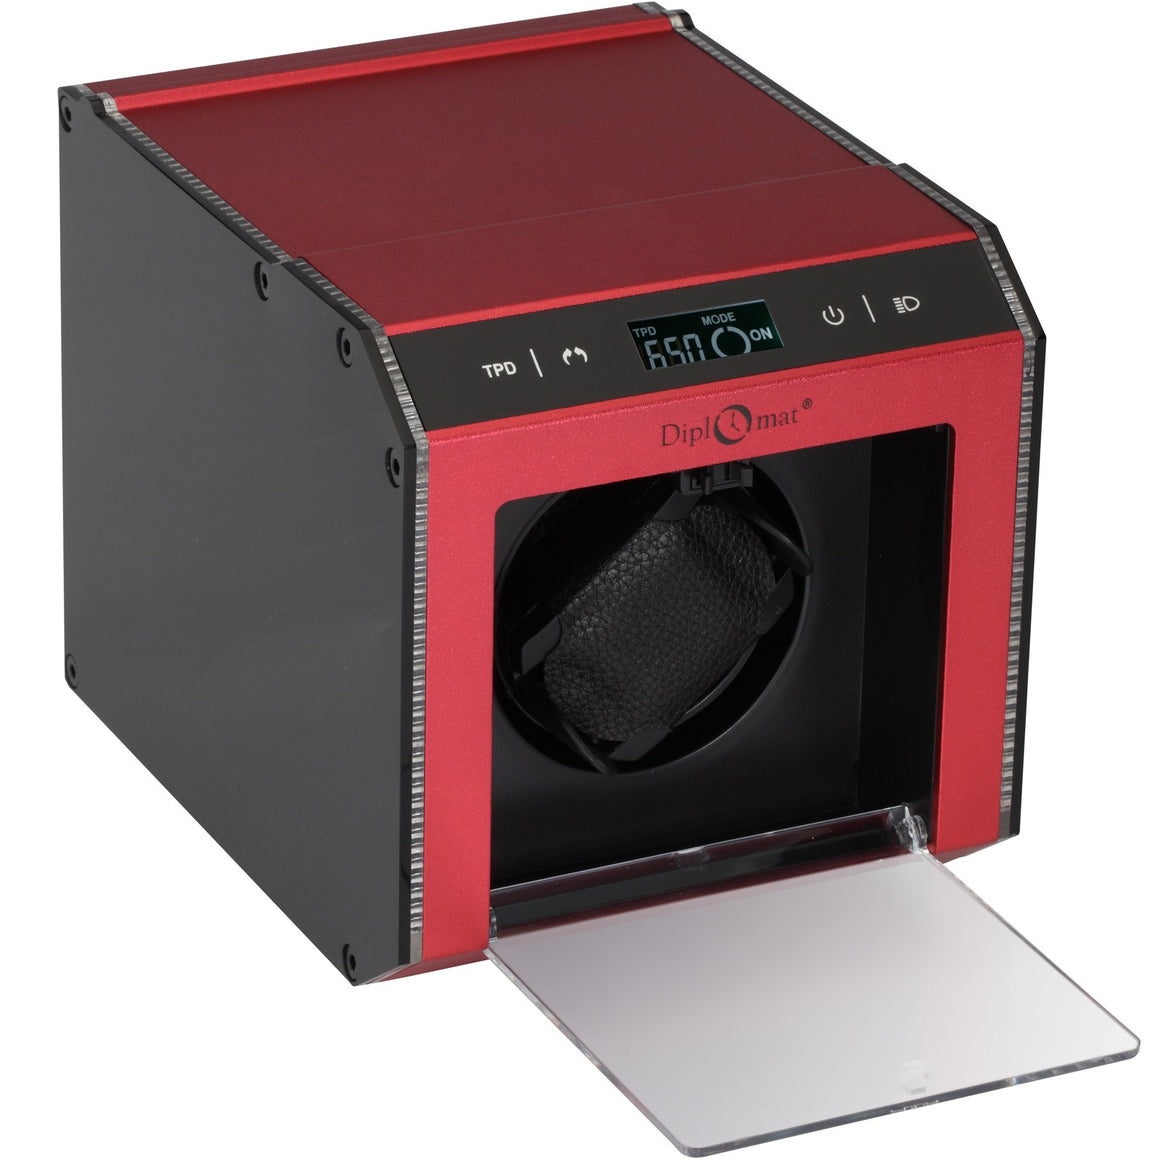 Diplomat Brushed Red Aluminum Single Watch Winder With L.E.D Lighting.